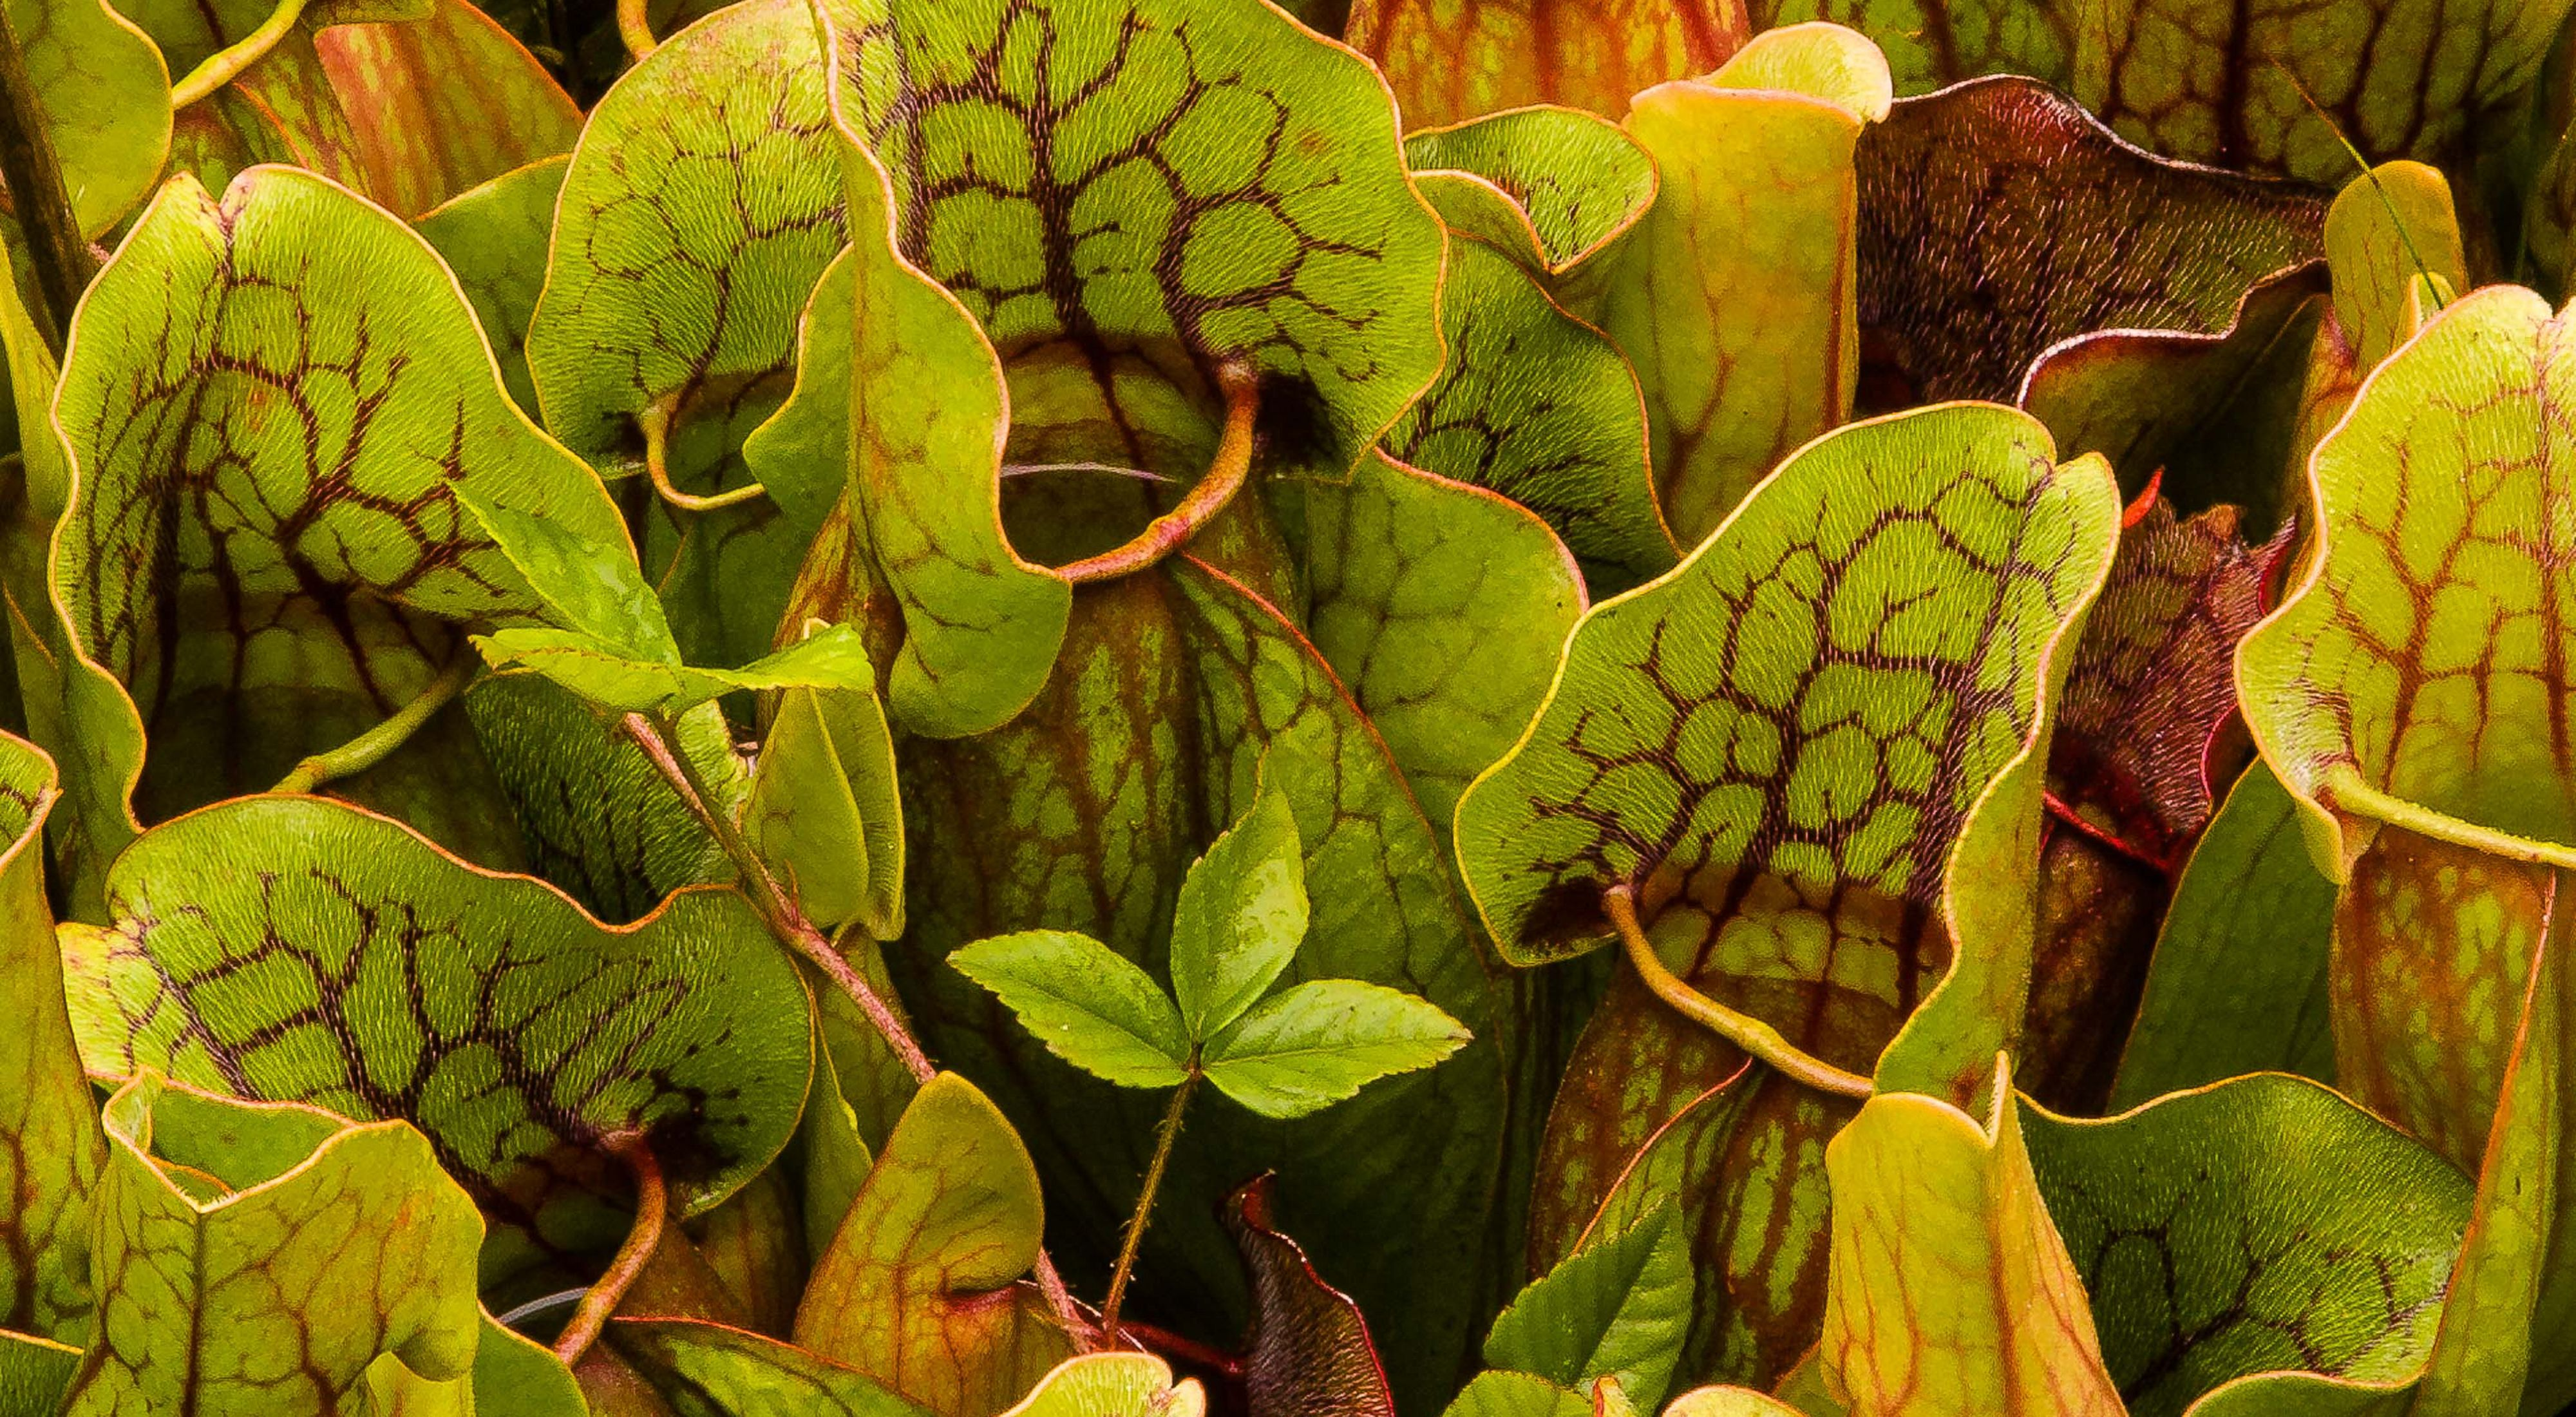 """A large patch of carnivorous pitcher plants. Tall green plants with red veined fronds lined with tiny hairs around an open """"mouth"""" filled with liquid."""